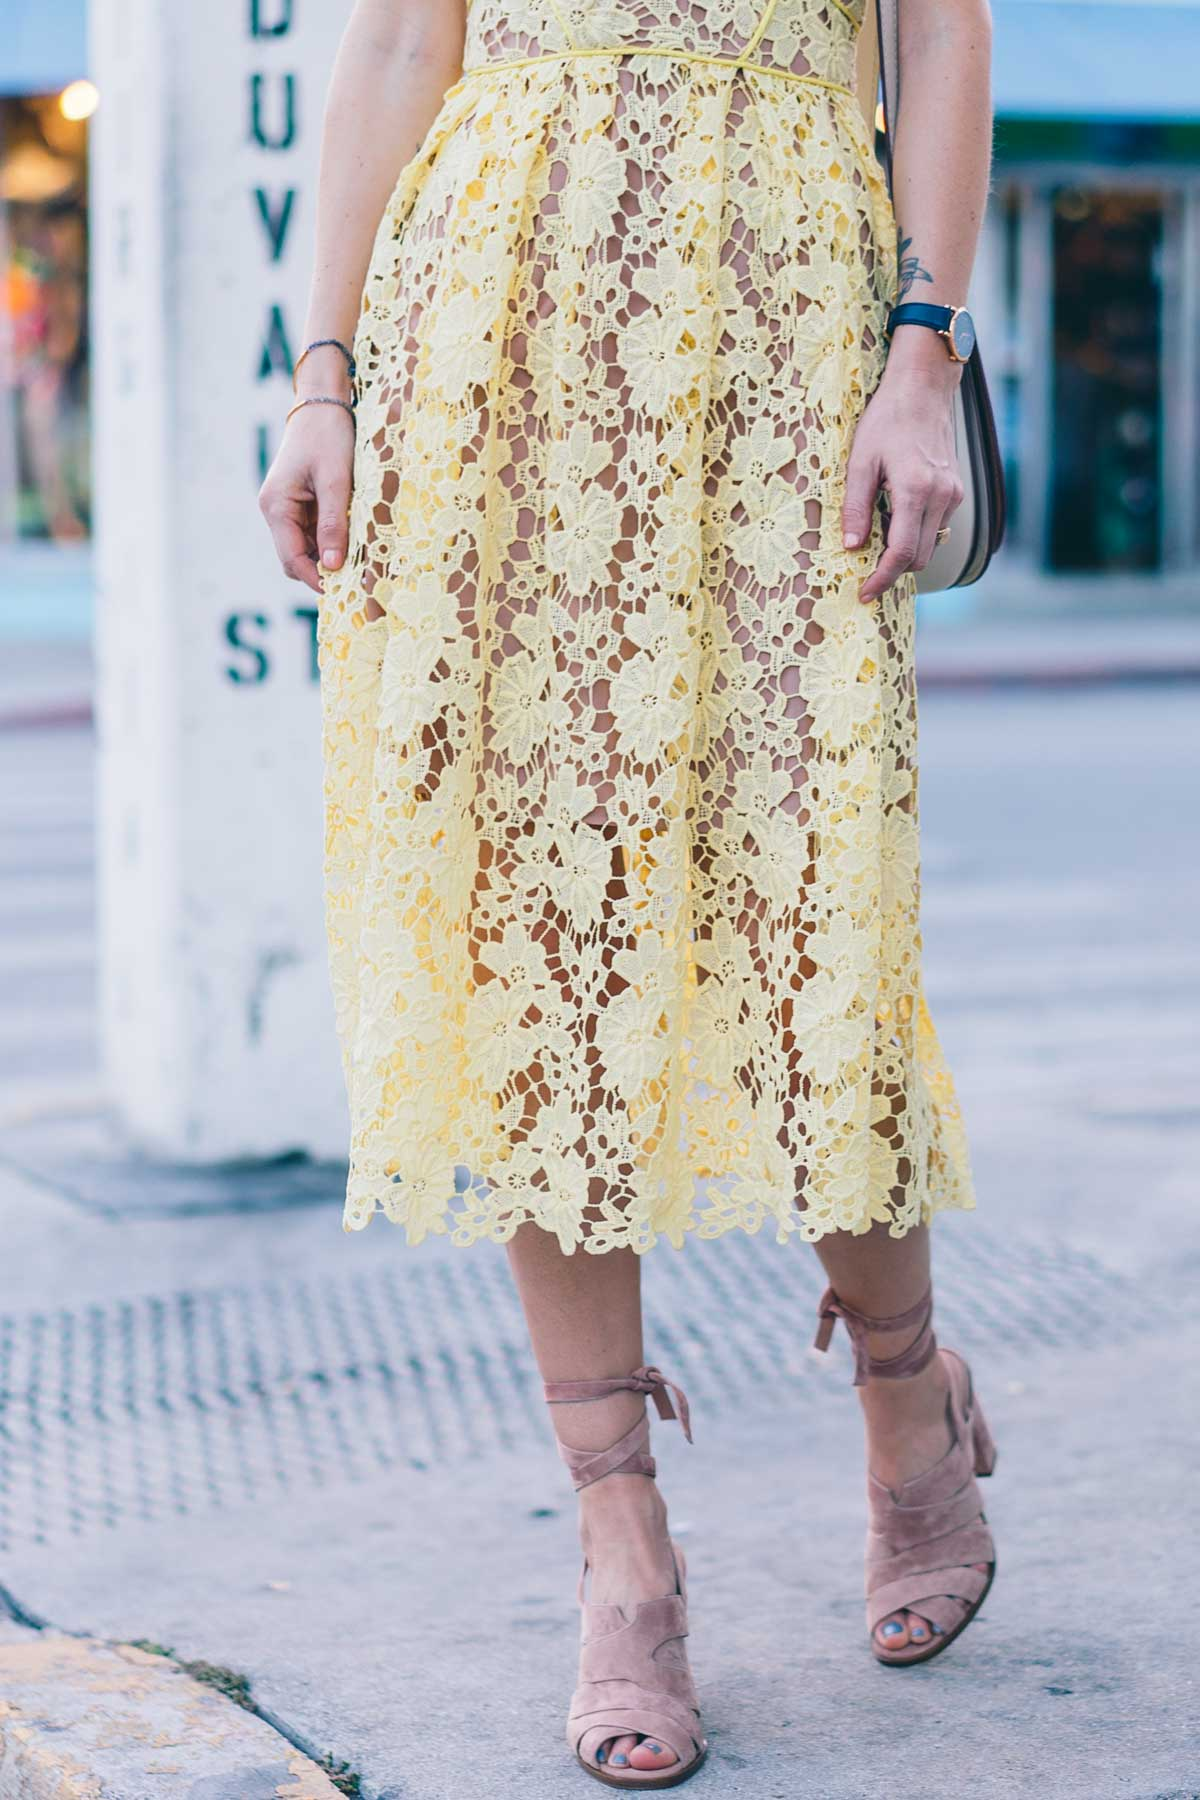 Spring trends to try, a yellow lace dress and lace up sandals on Jess Kirby